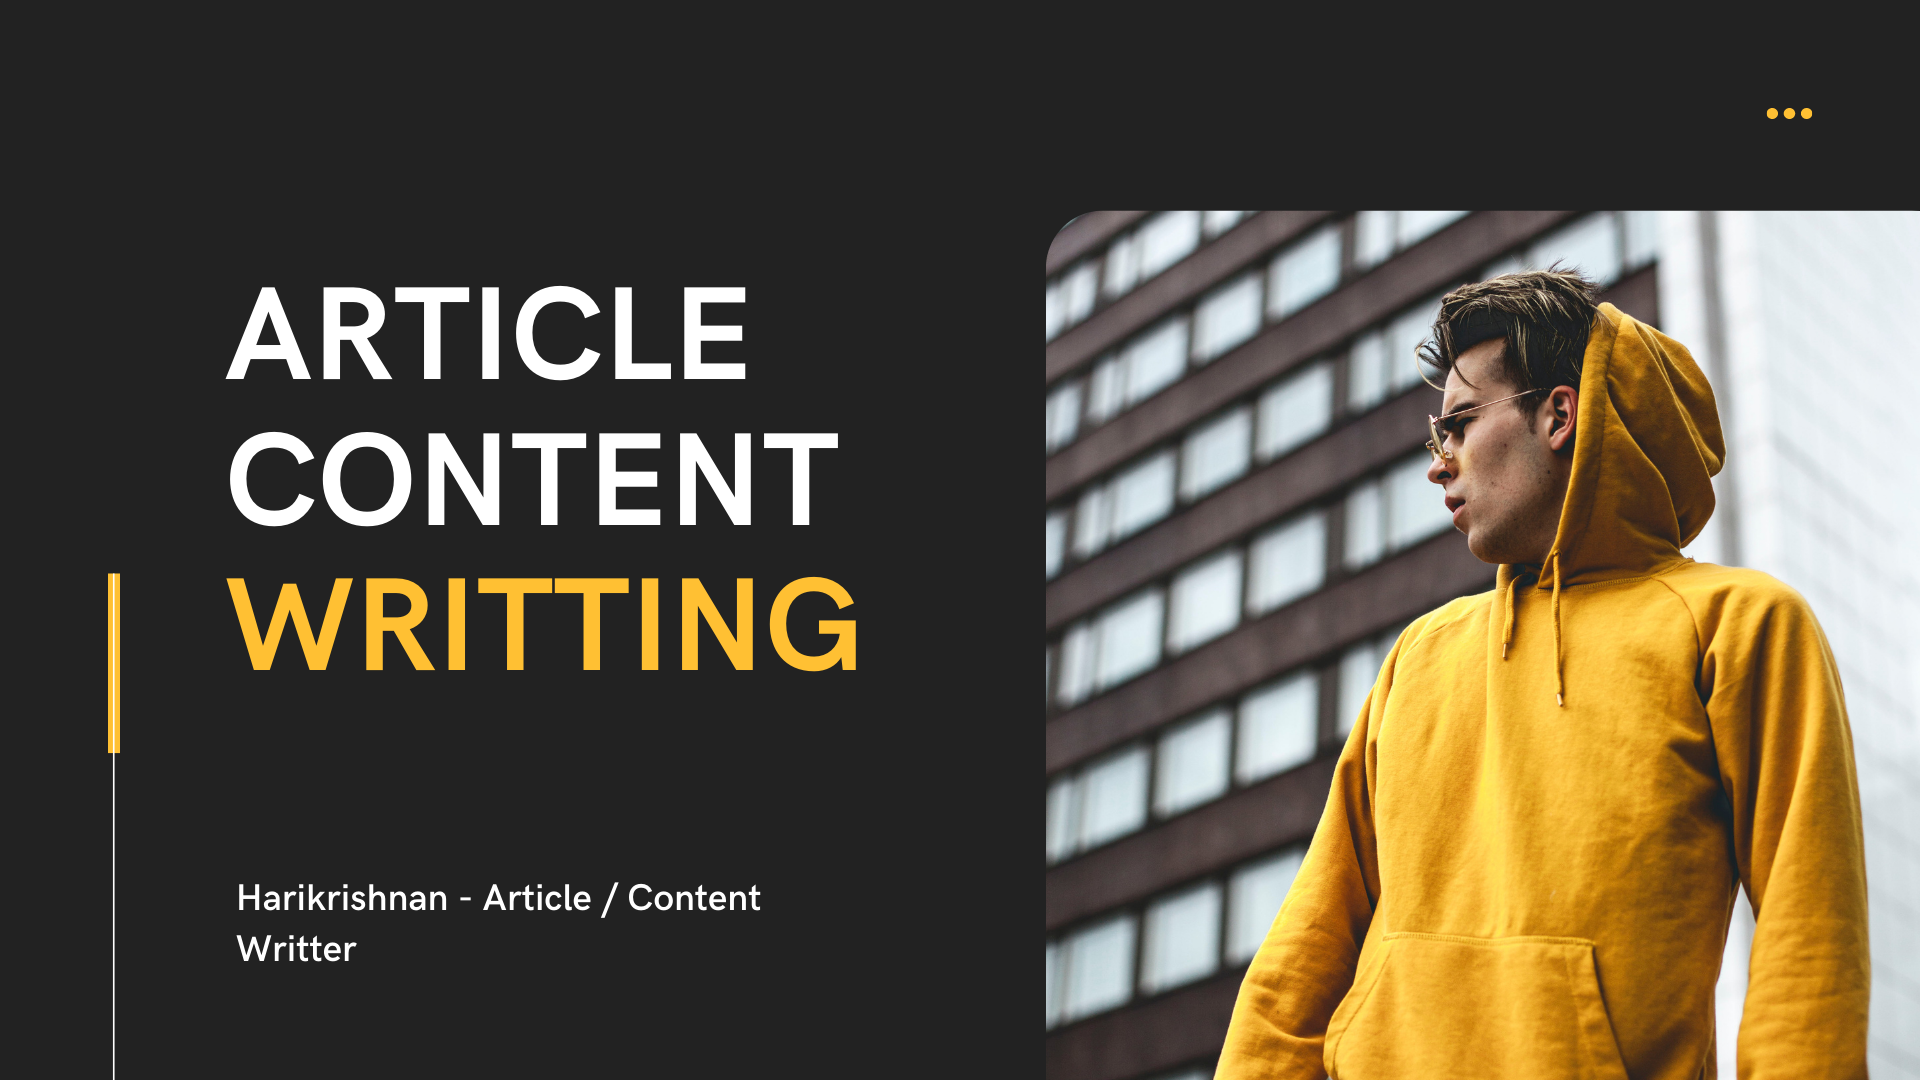 Article / Content Writting - I will write content / Article of 100,250,1000 words